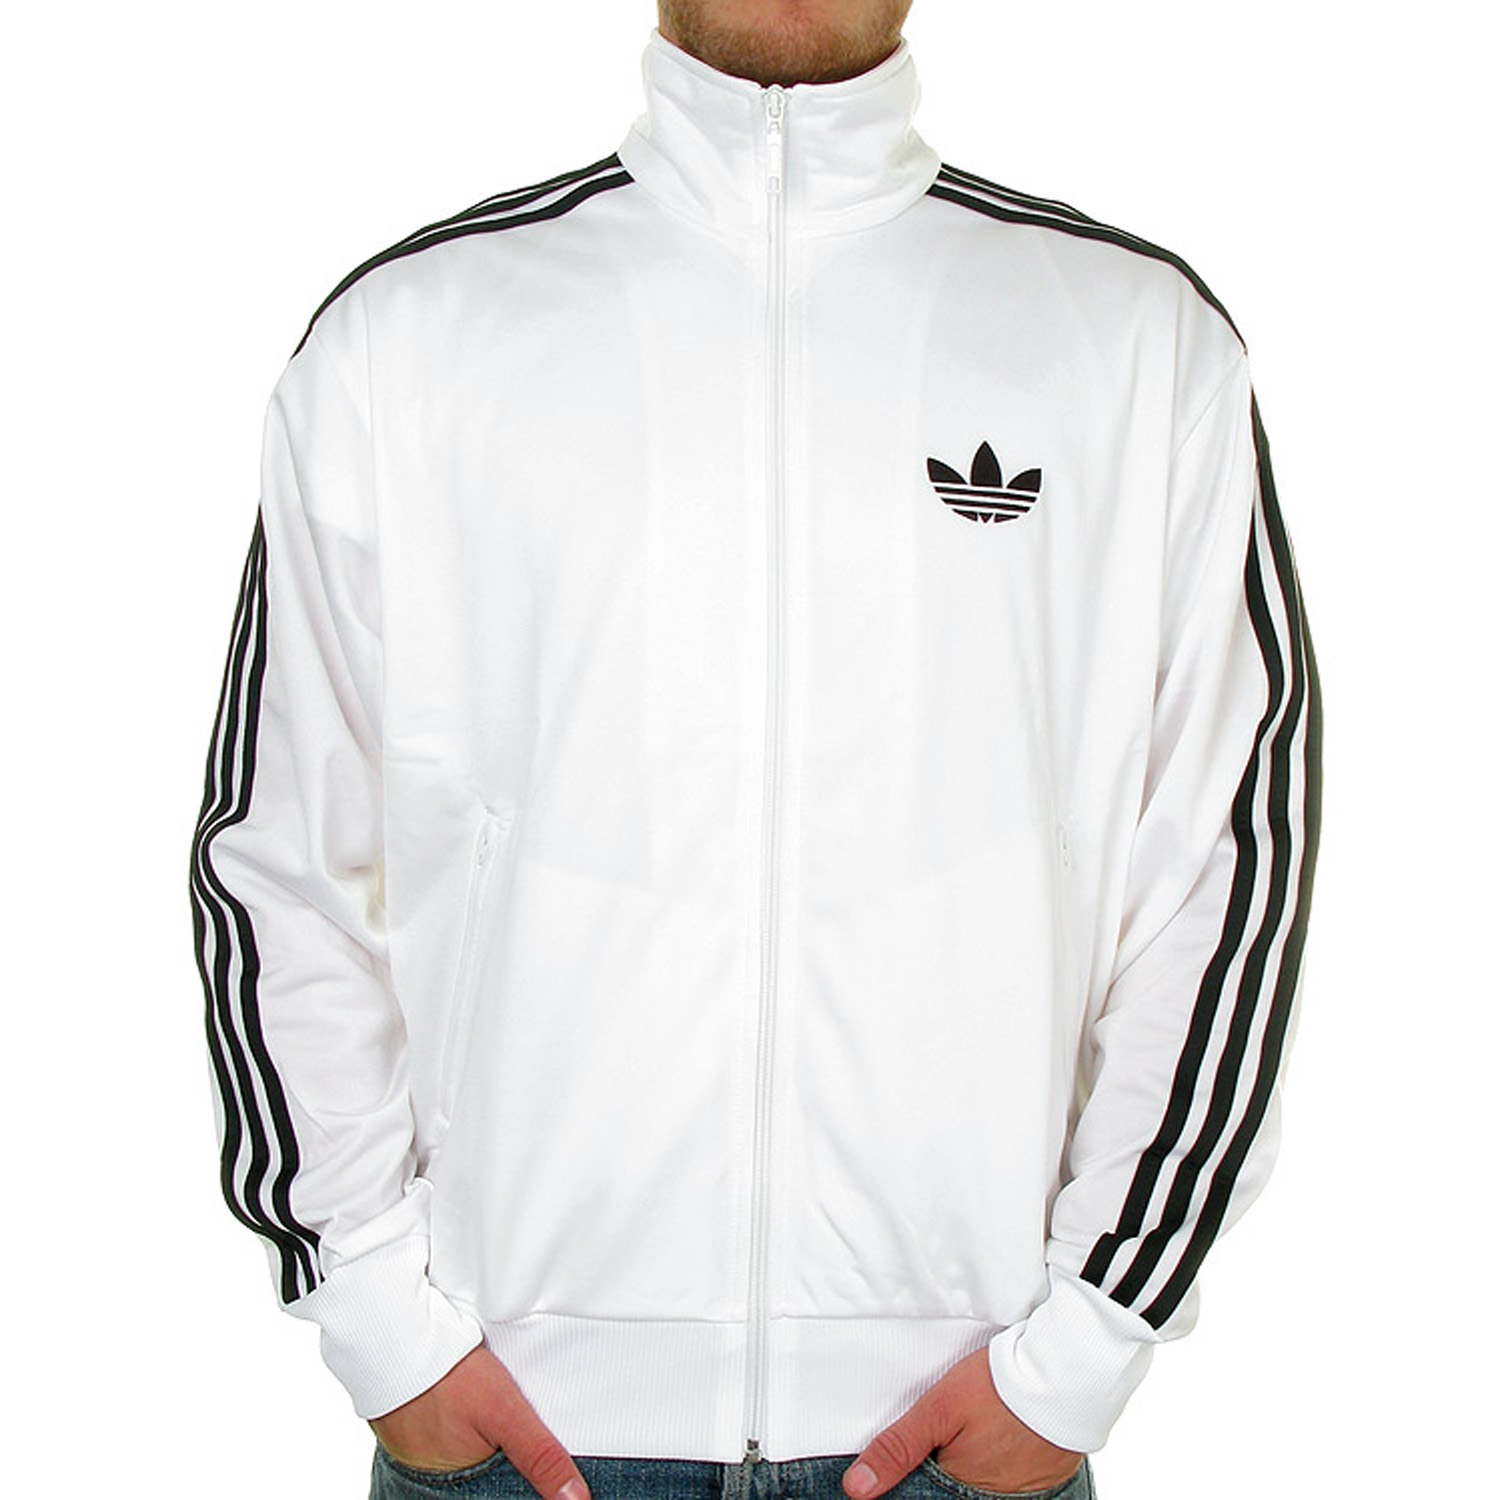 adidas originals track top men